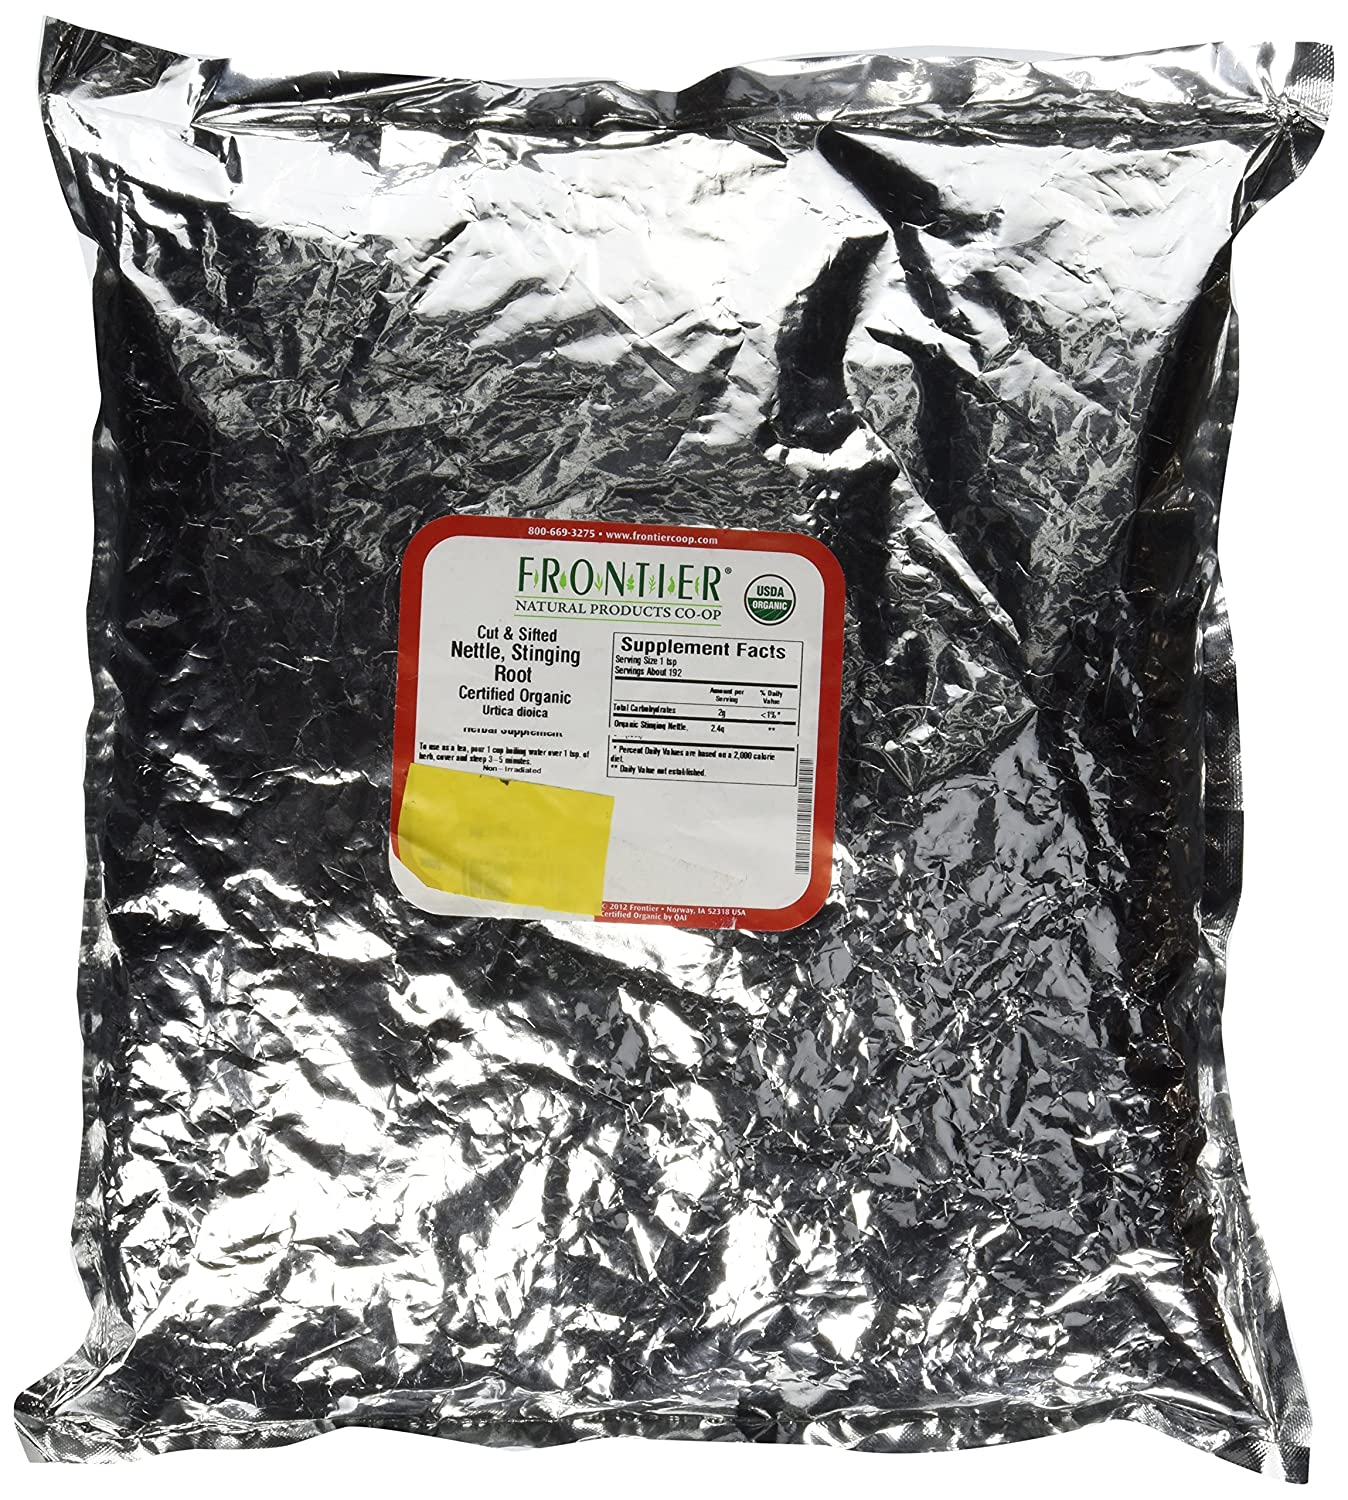 Bulk Nettle Root, Cut Sifted, Certified Organic Frontier Natural Products 1 lbs Bulk